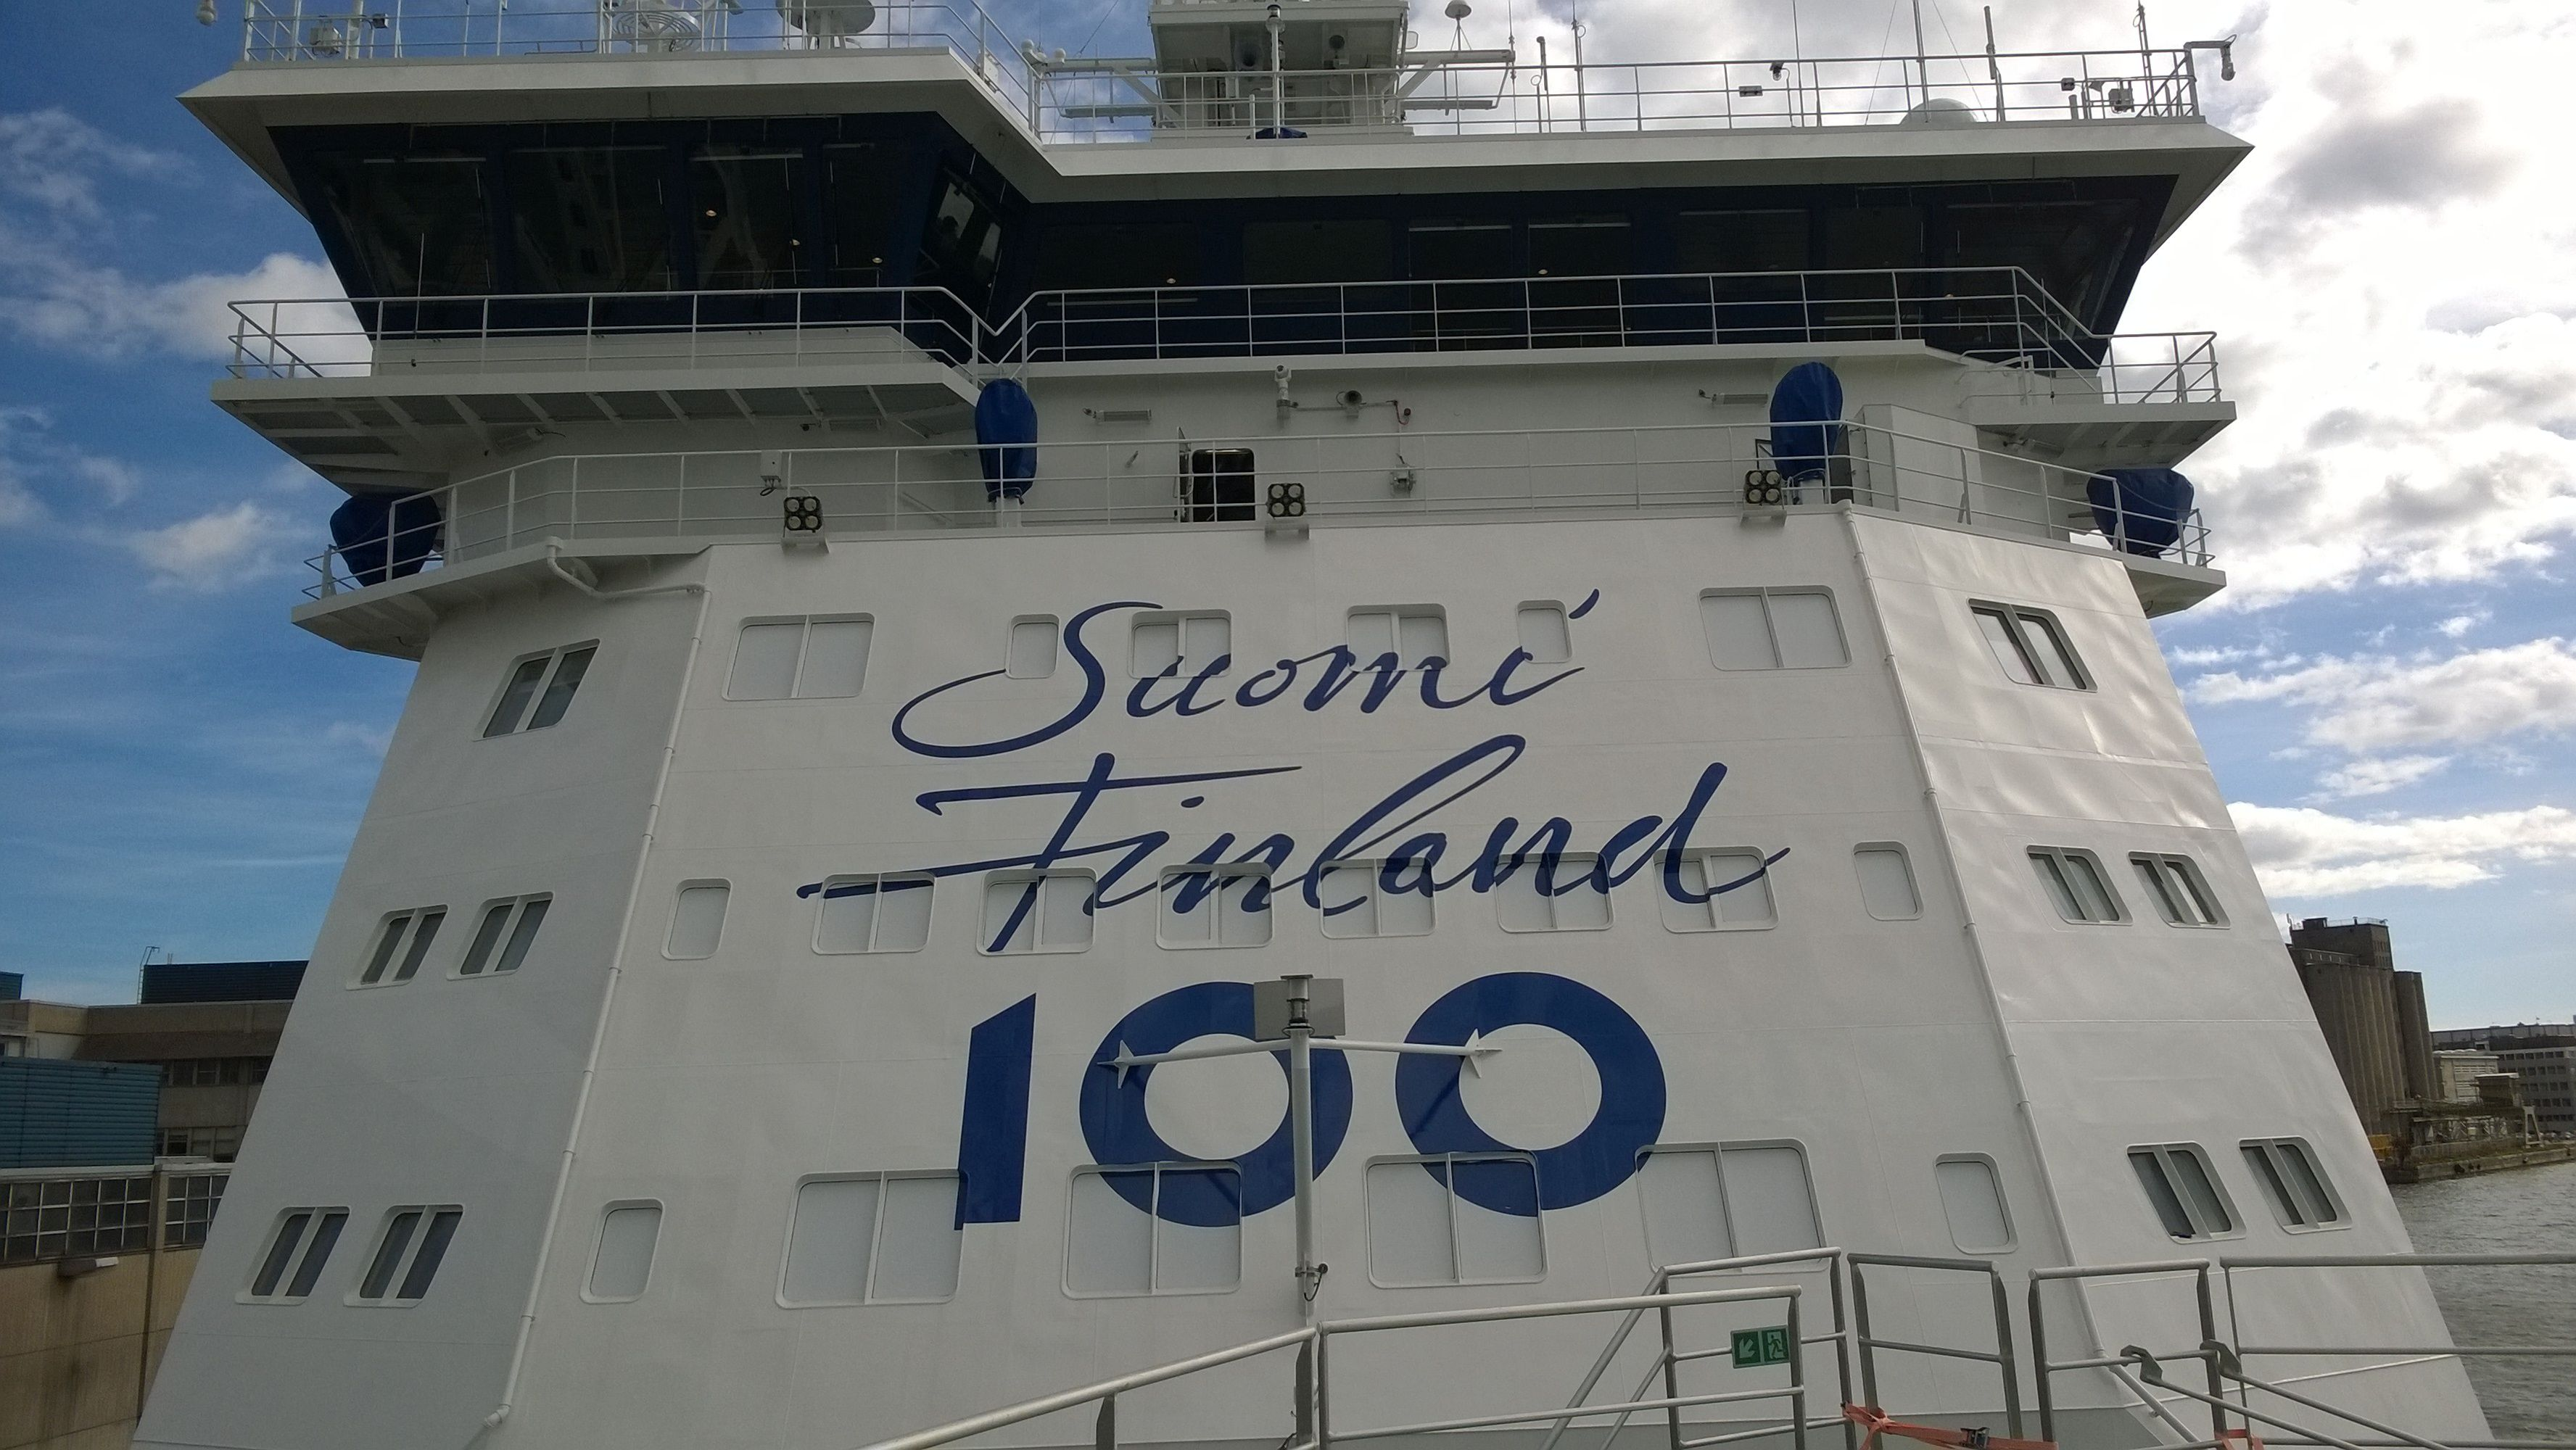 World's first LNG icebreaker set to go into service